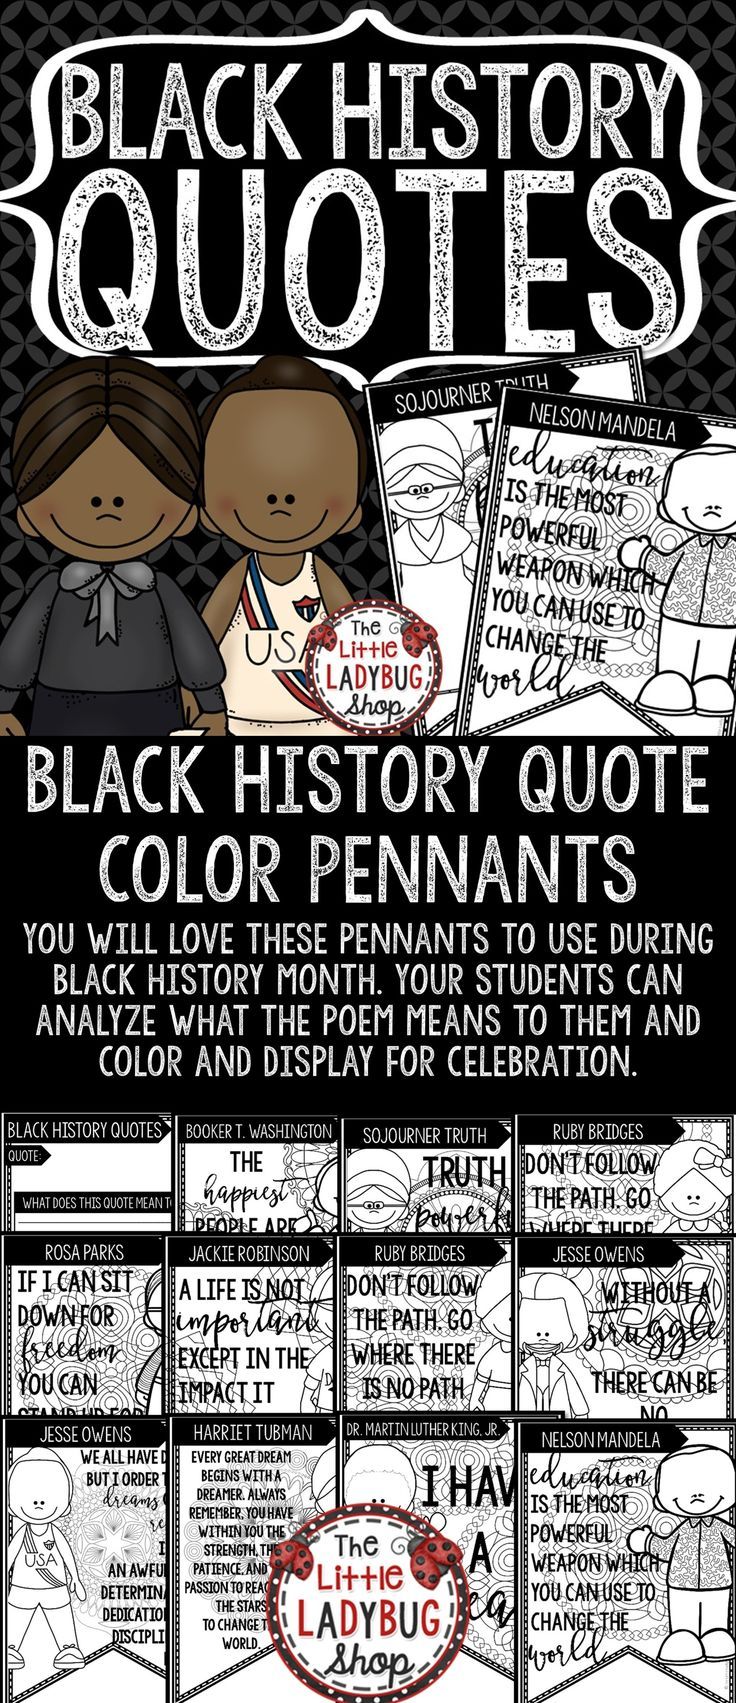 You will Love these Black History Month Quote Color Poster Pennants. These are color posters for classroom display with Famous Quotes from these Influential Leaders of history. Your students can analyze what the poem means to them and color and display for celebration.